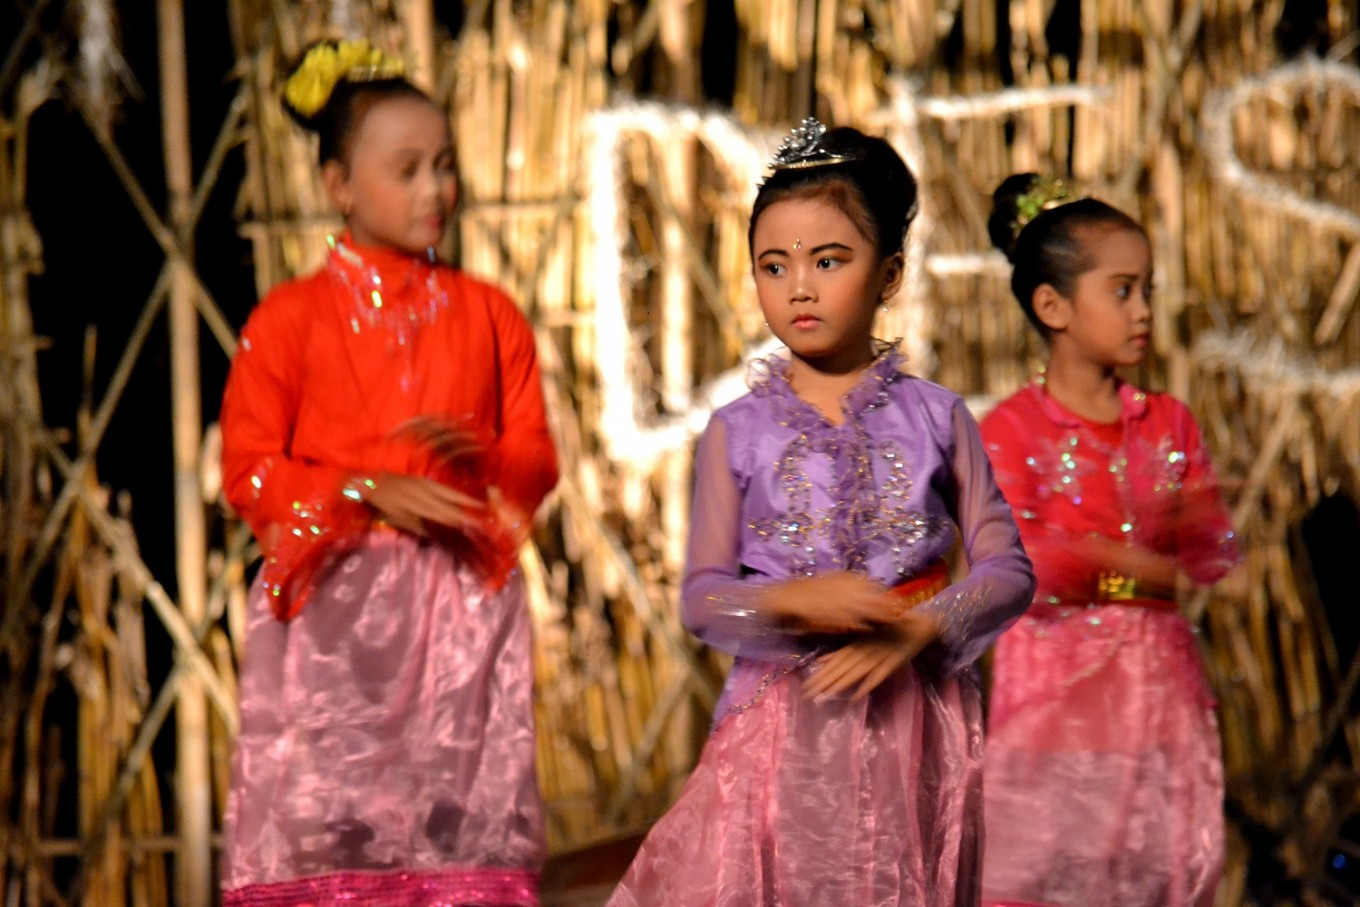 Children participate in the National Farmers Day Arts Performance.